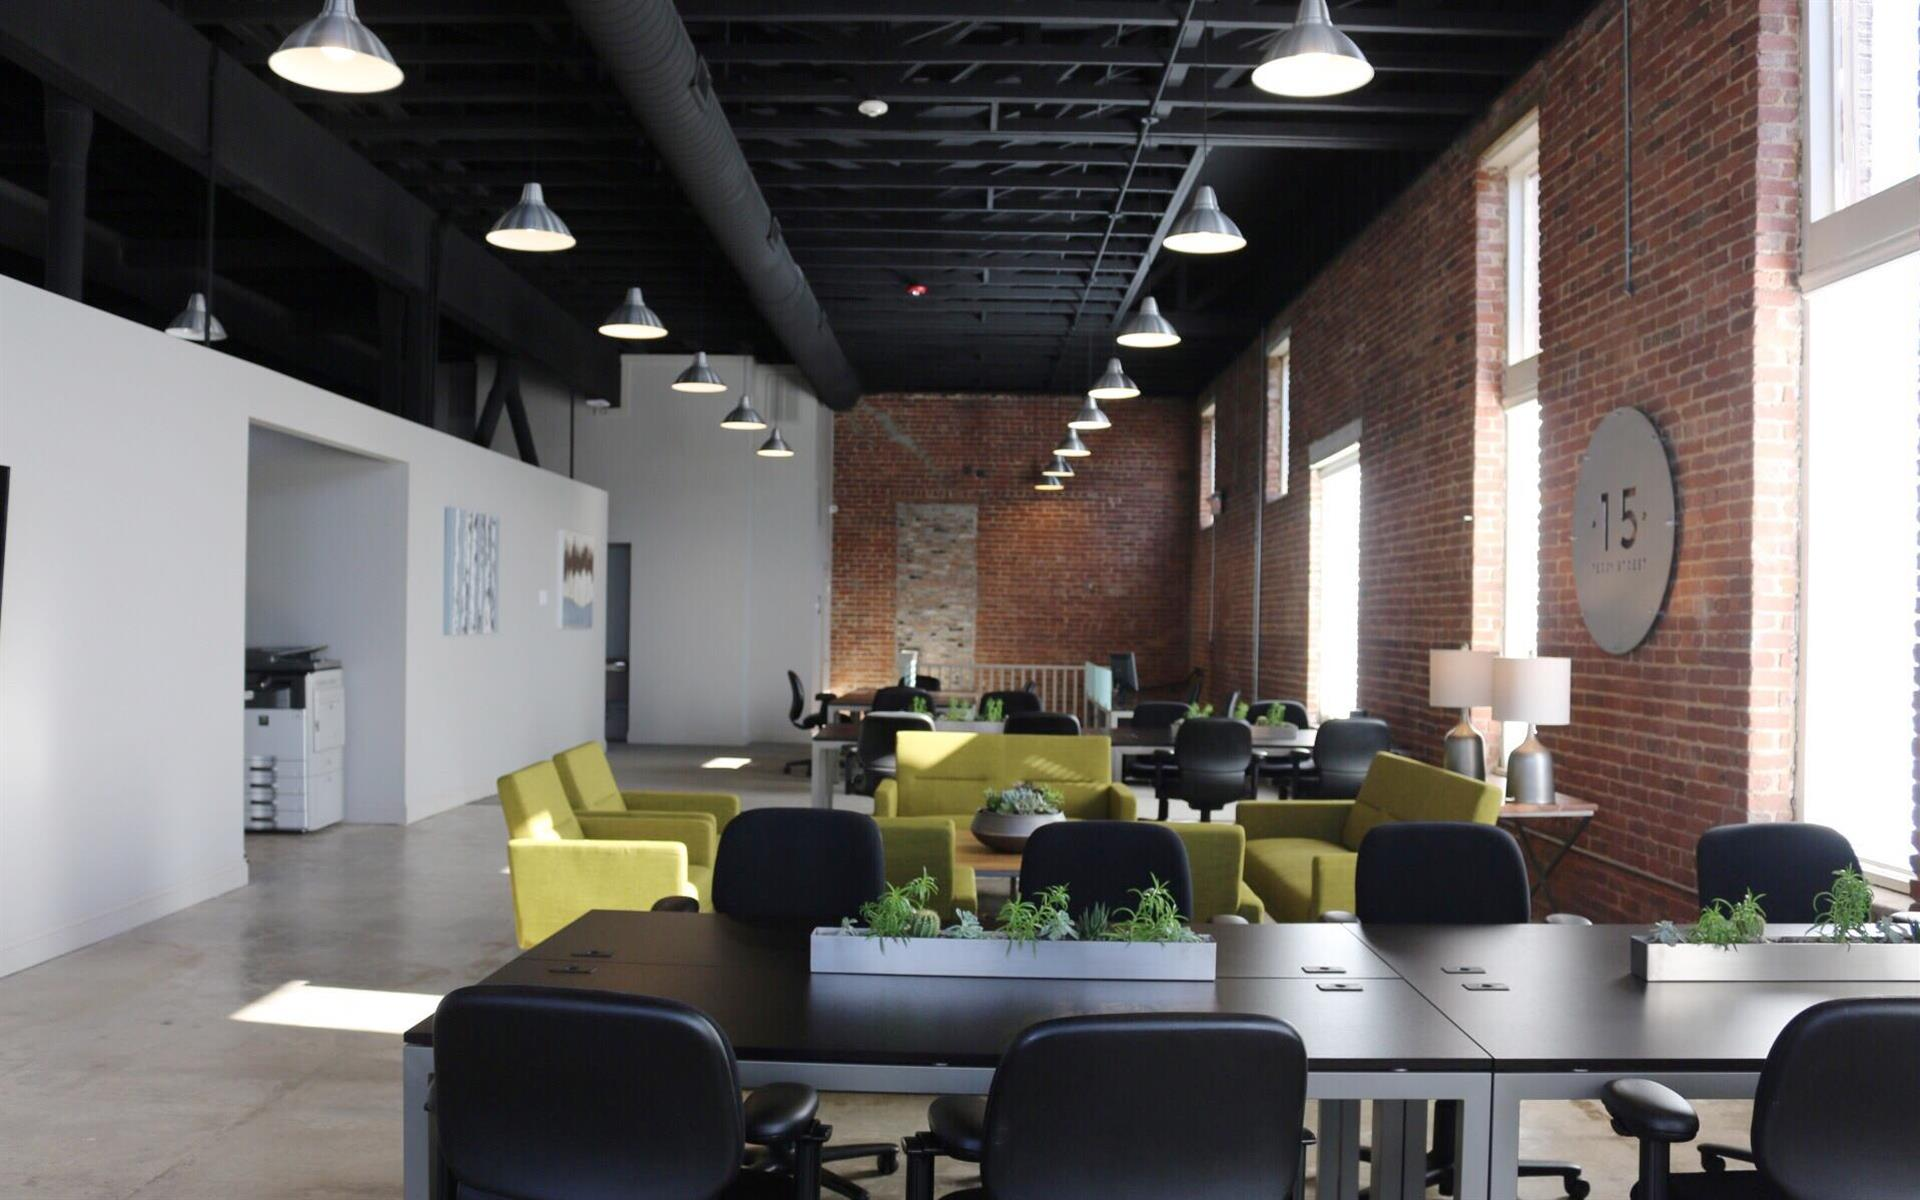 15 Perry Street - Open Workspace (Coworking)